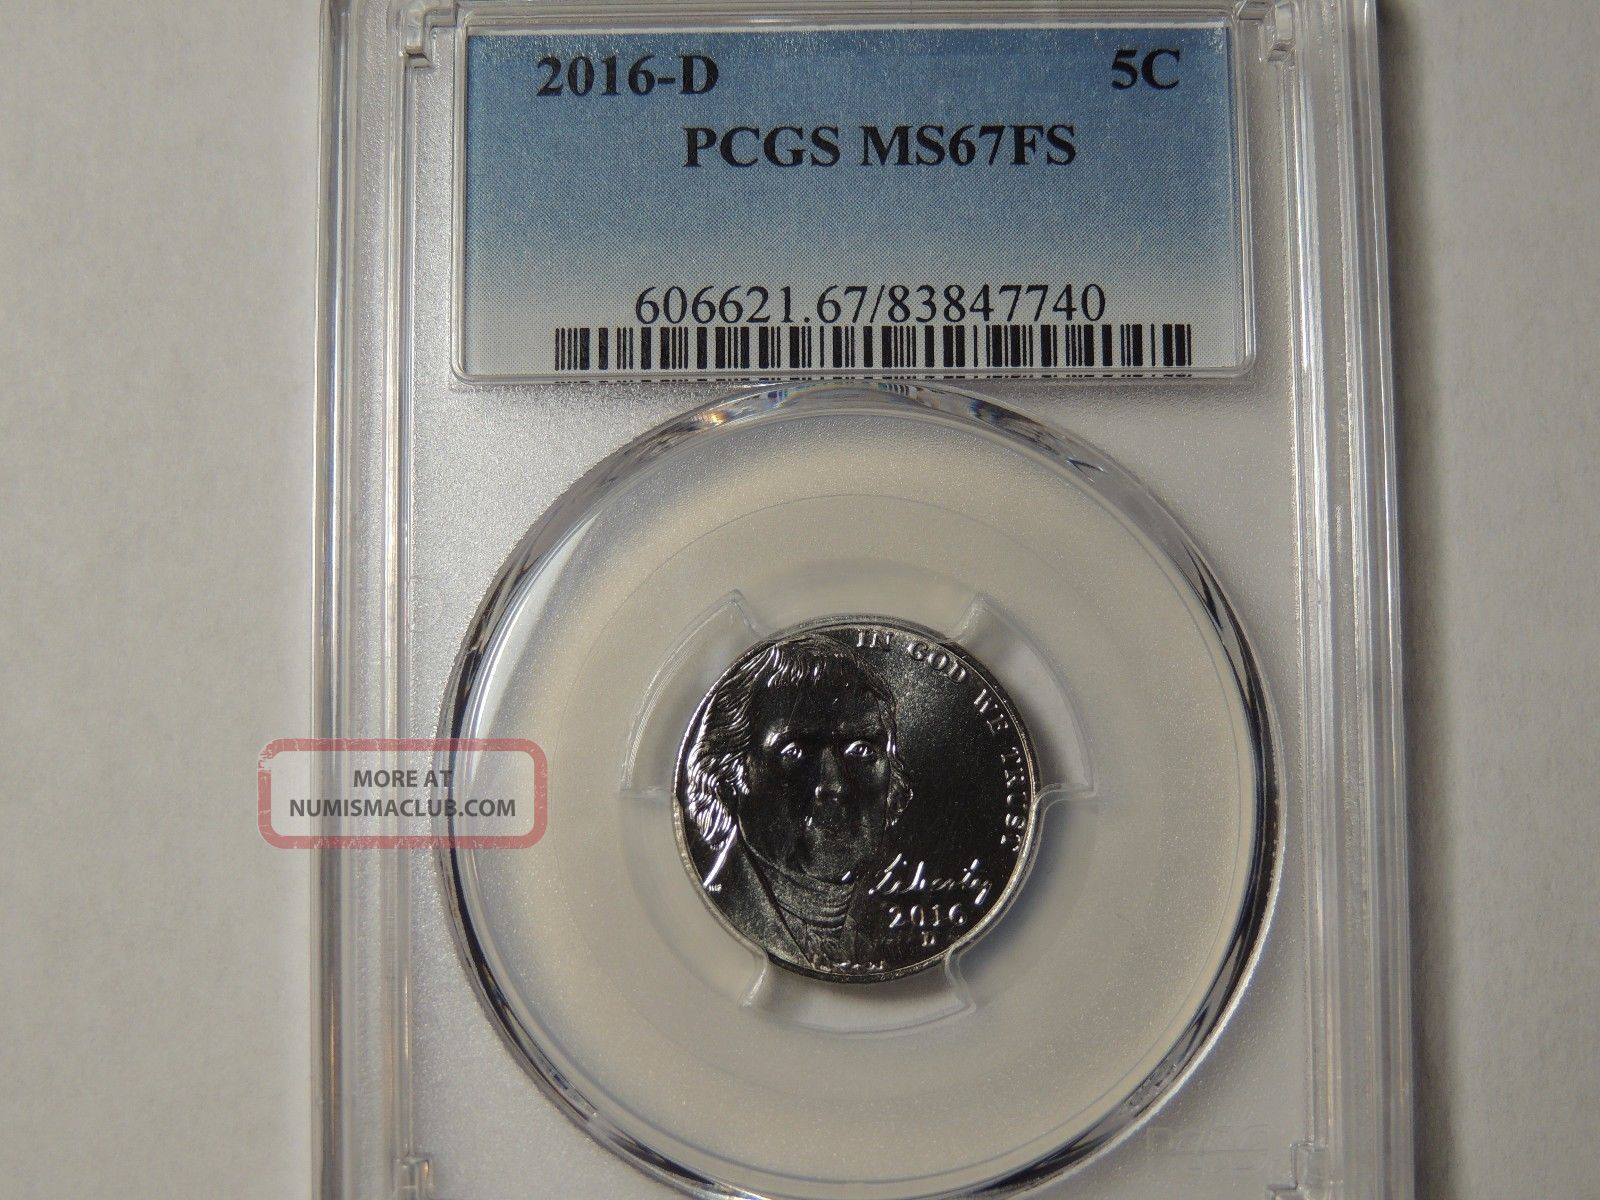 2016 D Pcgs Jefferson Nickel Ms67 Fs Full Steps Nickels photo